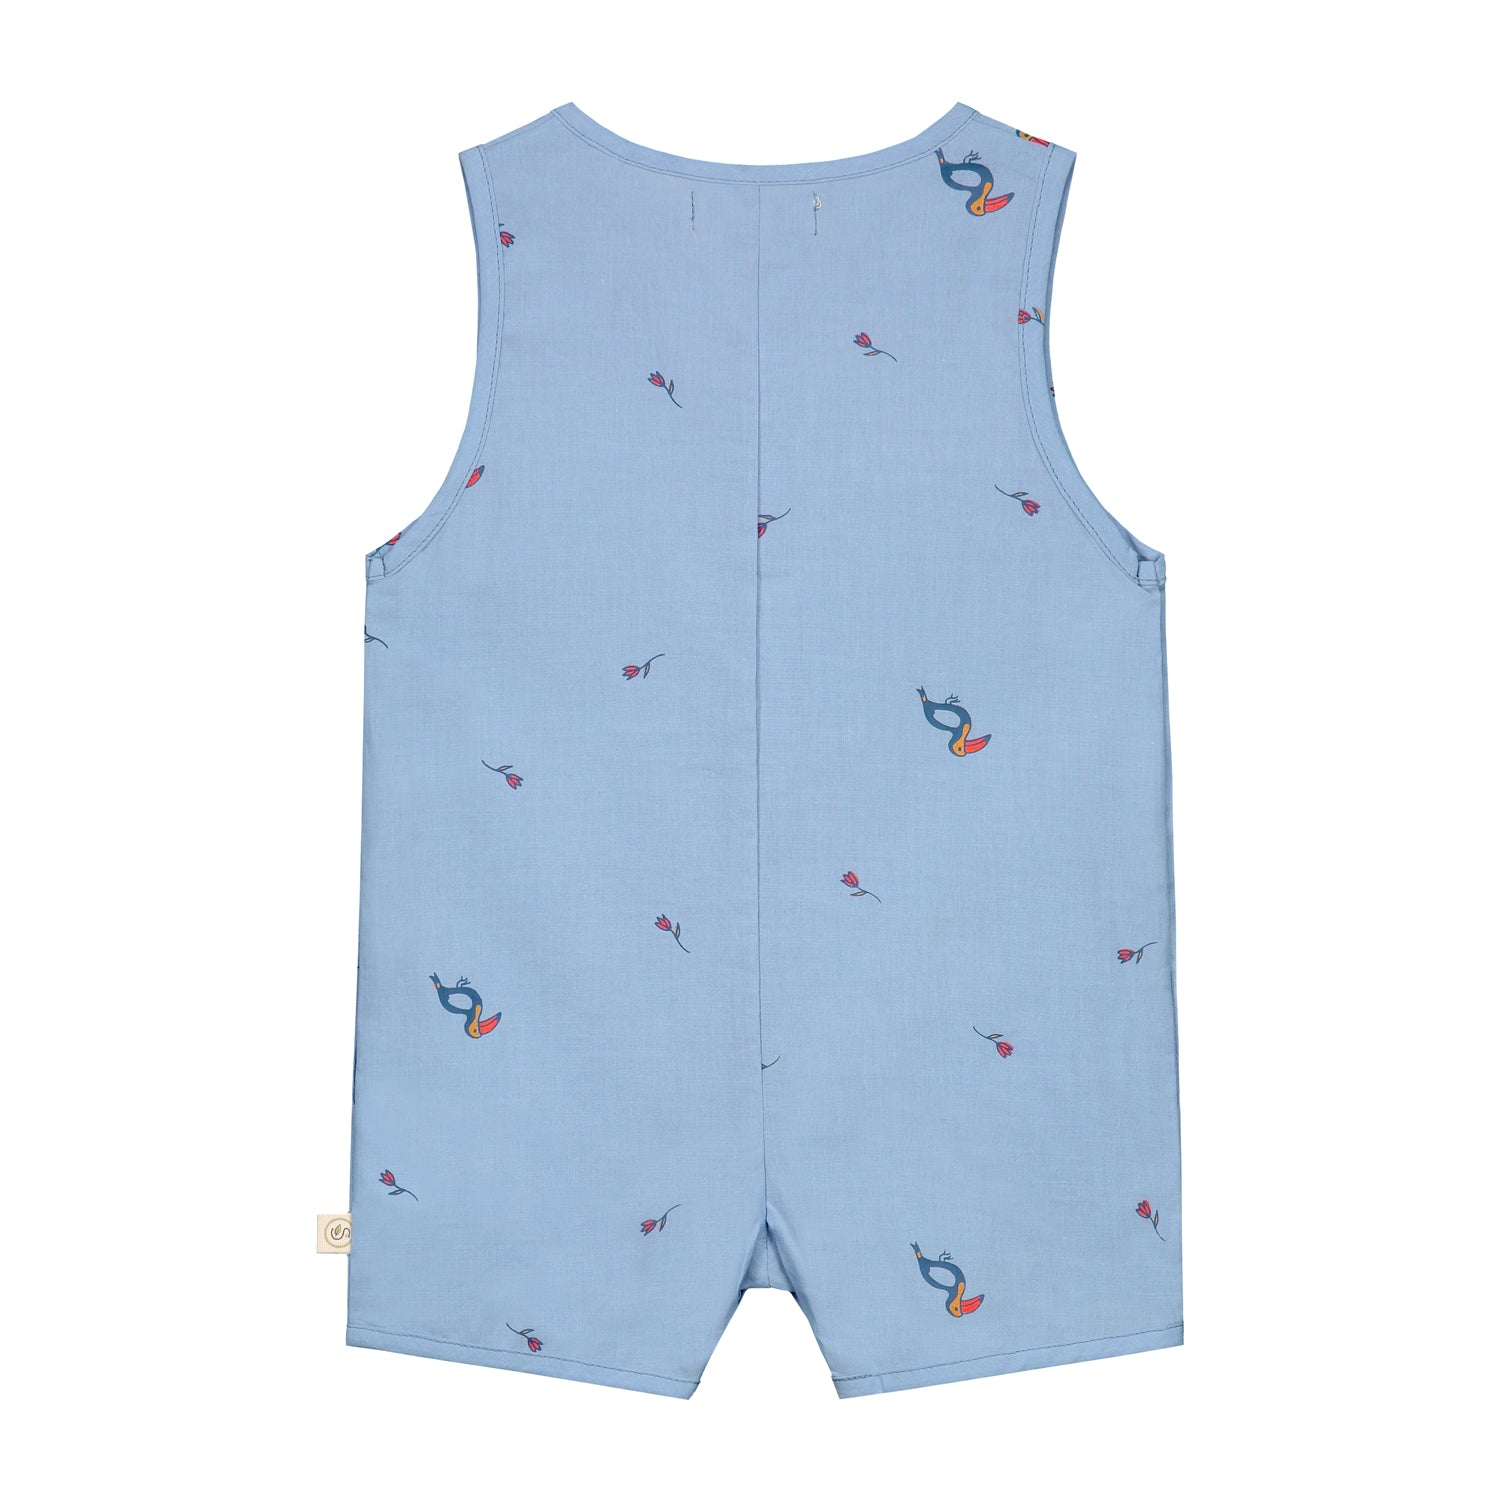 Tropical Toucan sleeveless shortall